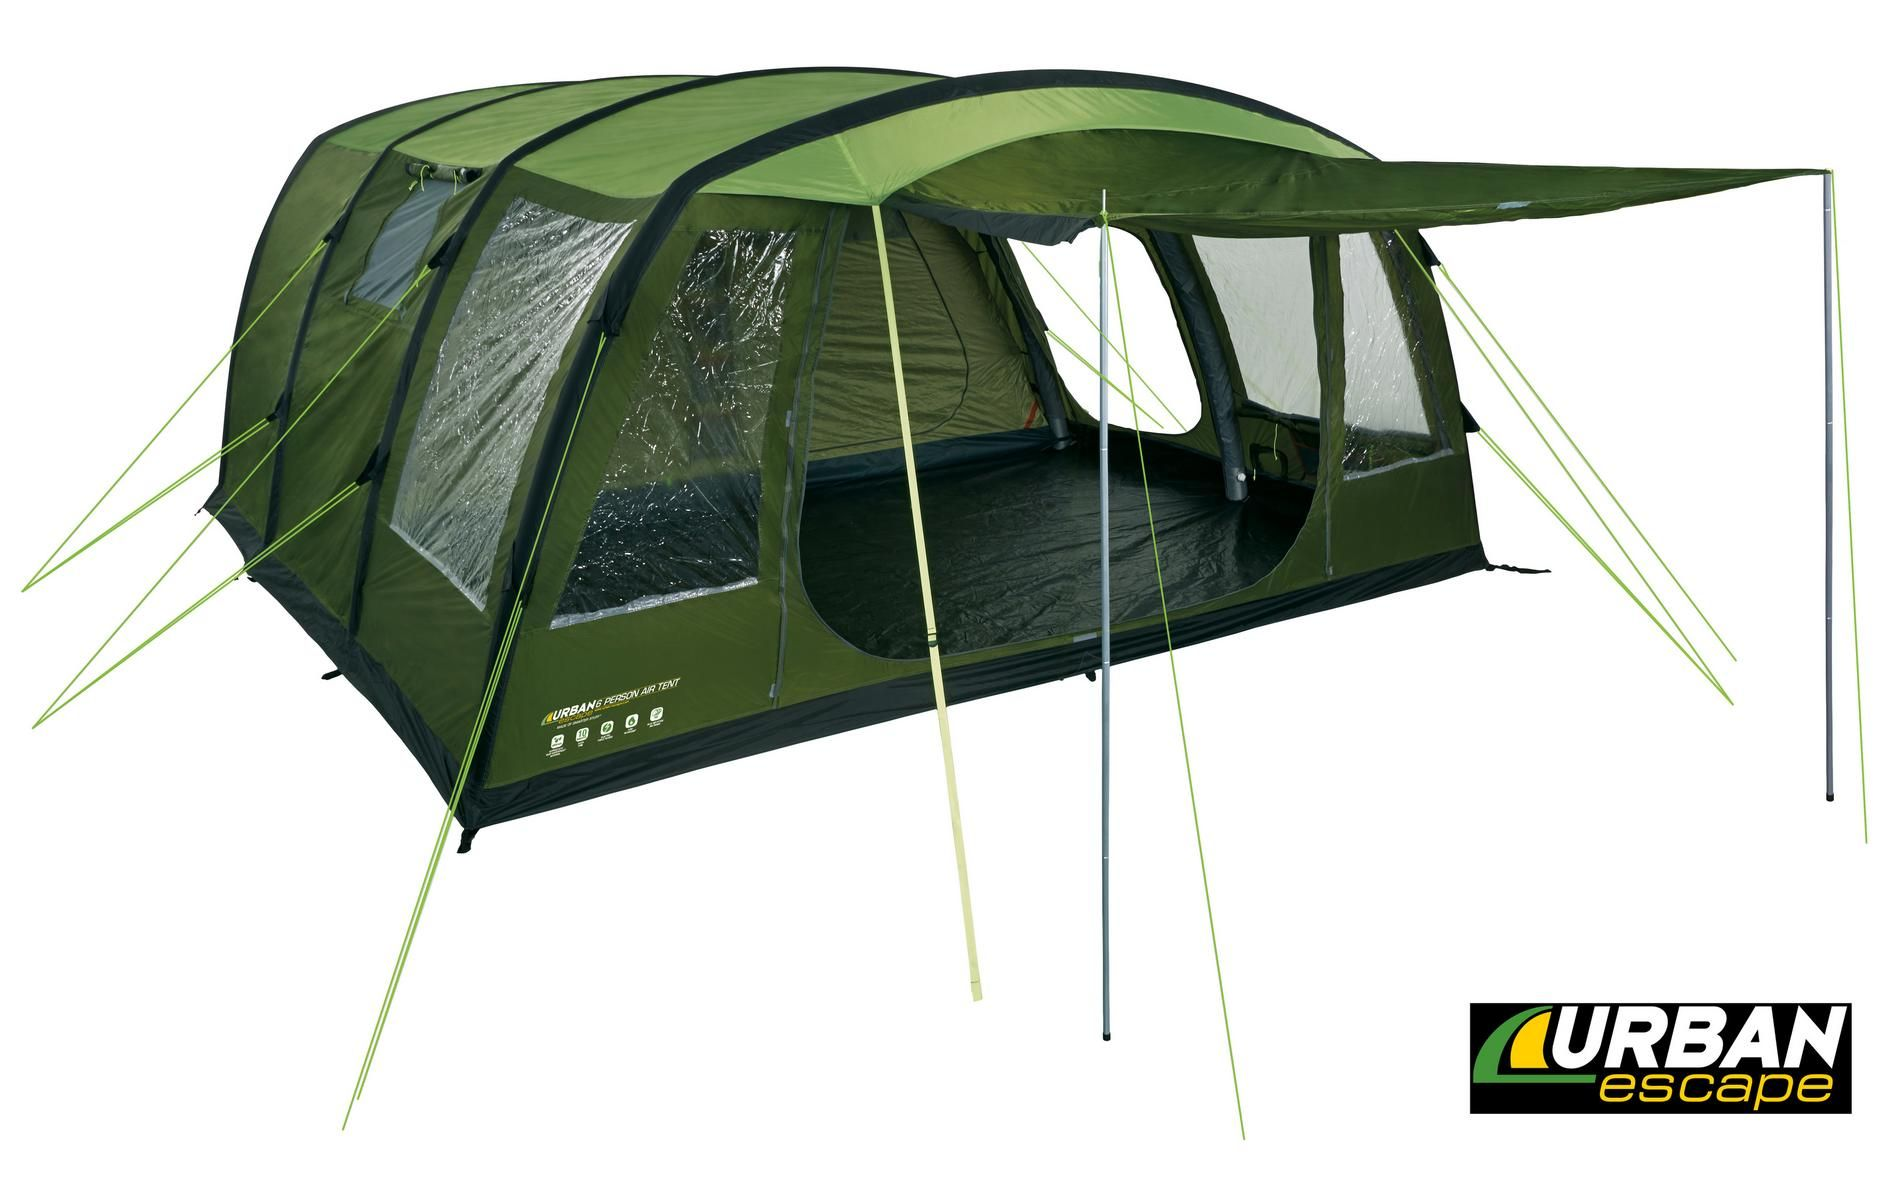 Urban Escape 6 Man Air Tent  sc 1 st  Pinterest & Urban Escape 6 Man Air Tent | Camping | Pinterest | Air tent and Tents